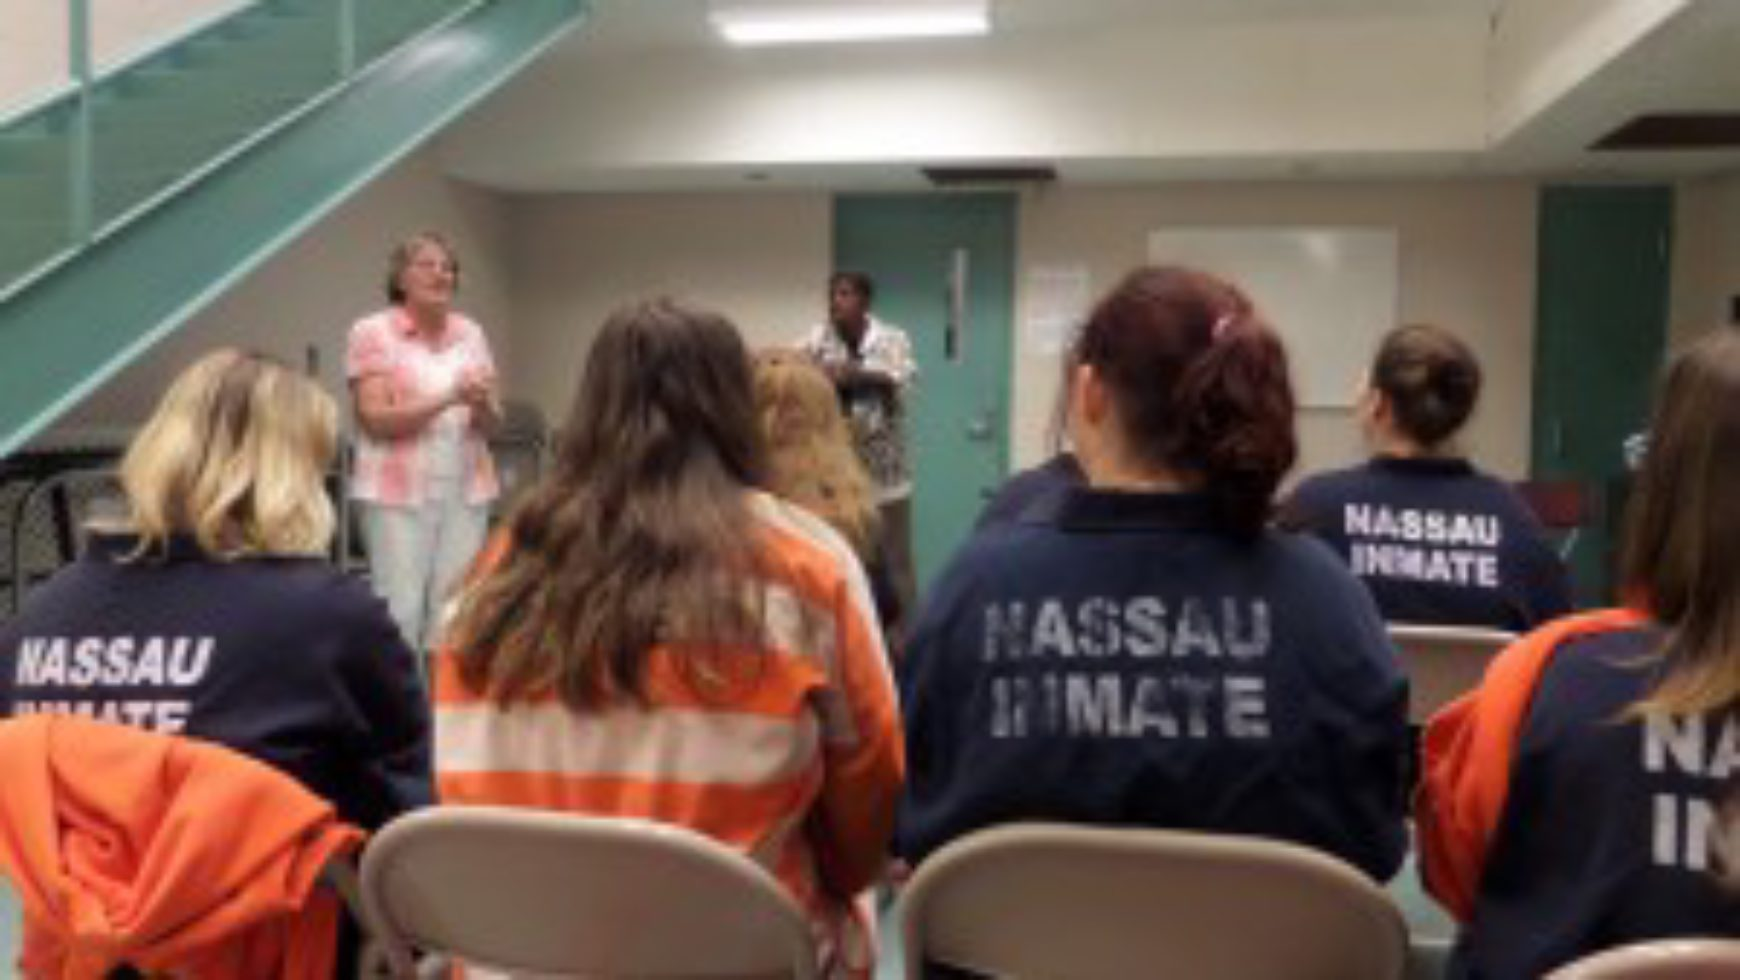 Parenting programs in jail could be positive for mothers, children